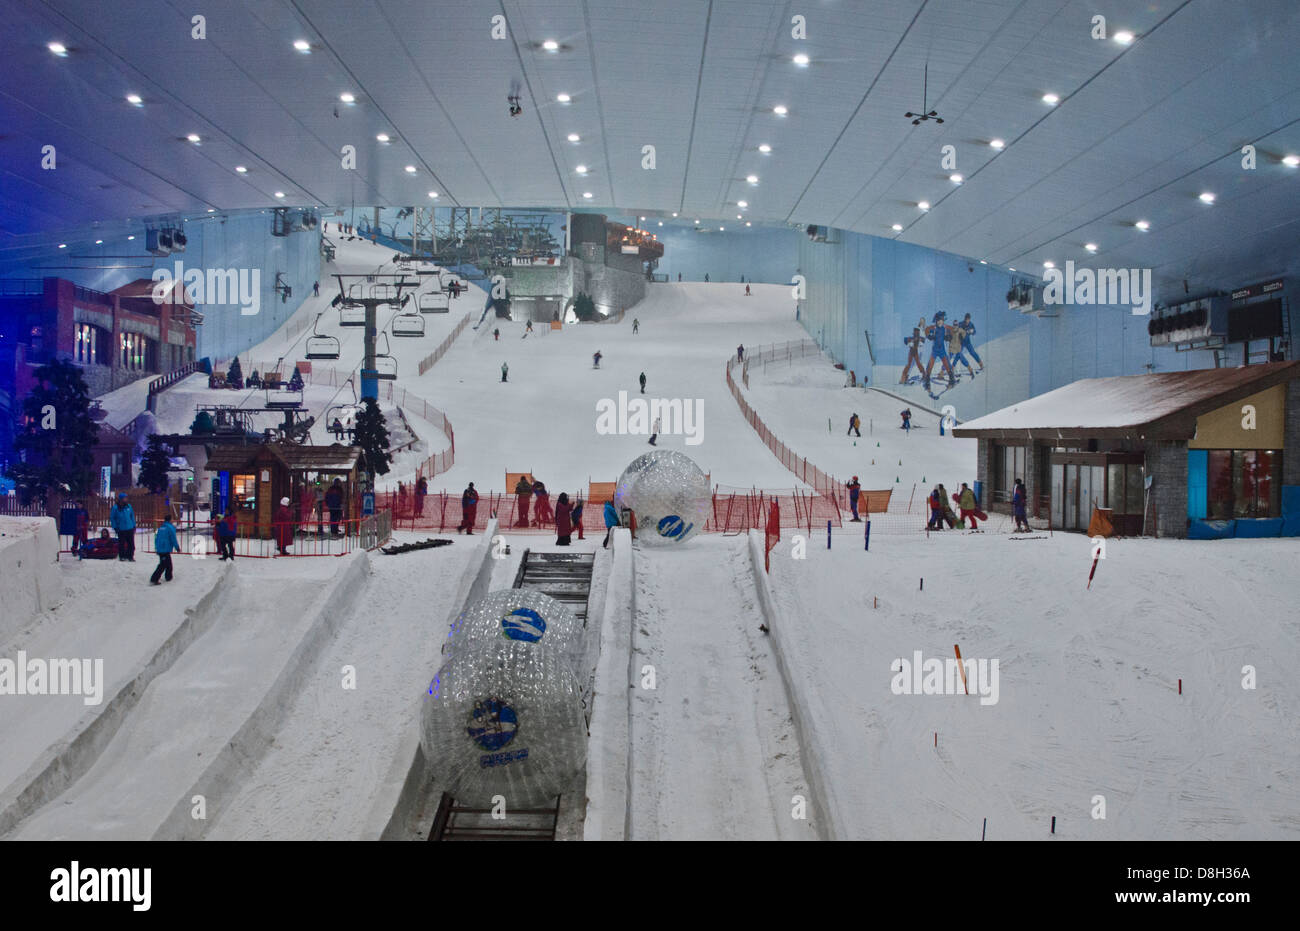 Only Indoor Ski Slope Resort In The World At Mall Of Emirates Dubai UAE Thriving United Arab